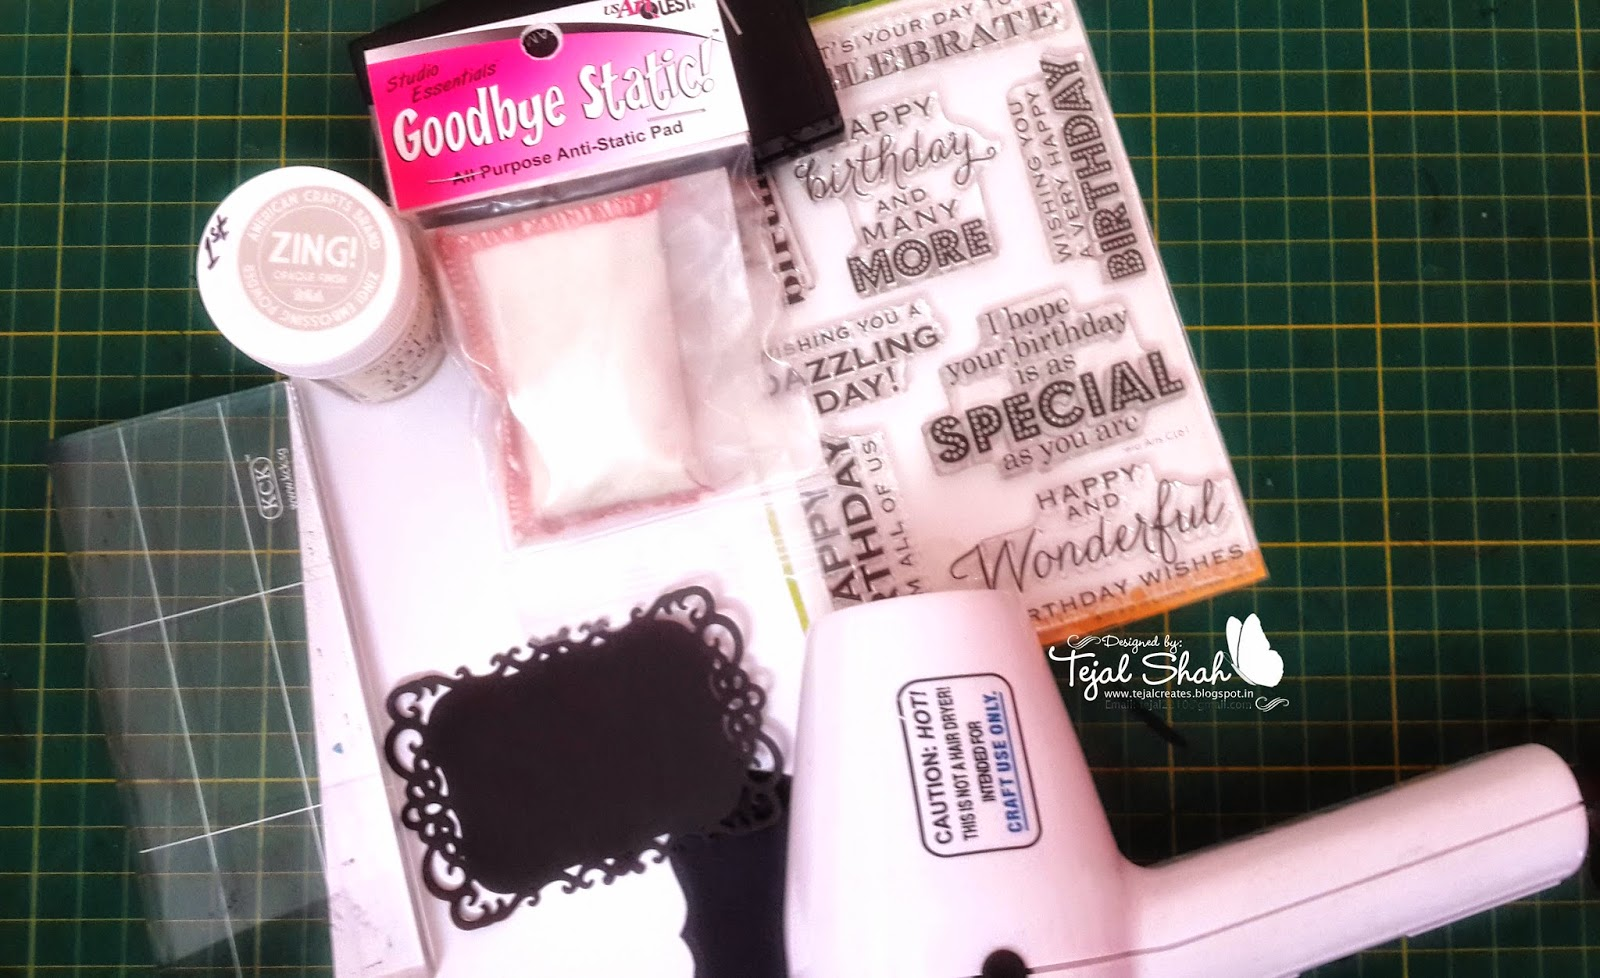 Crafters corner goodbye static pad review for American crafts zap embossing heat gun